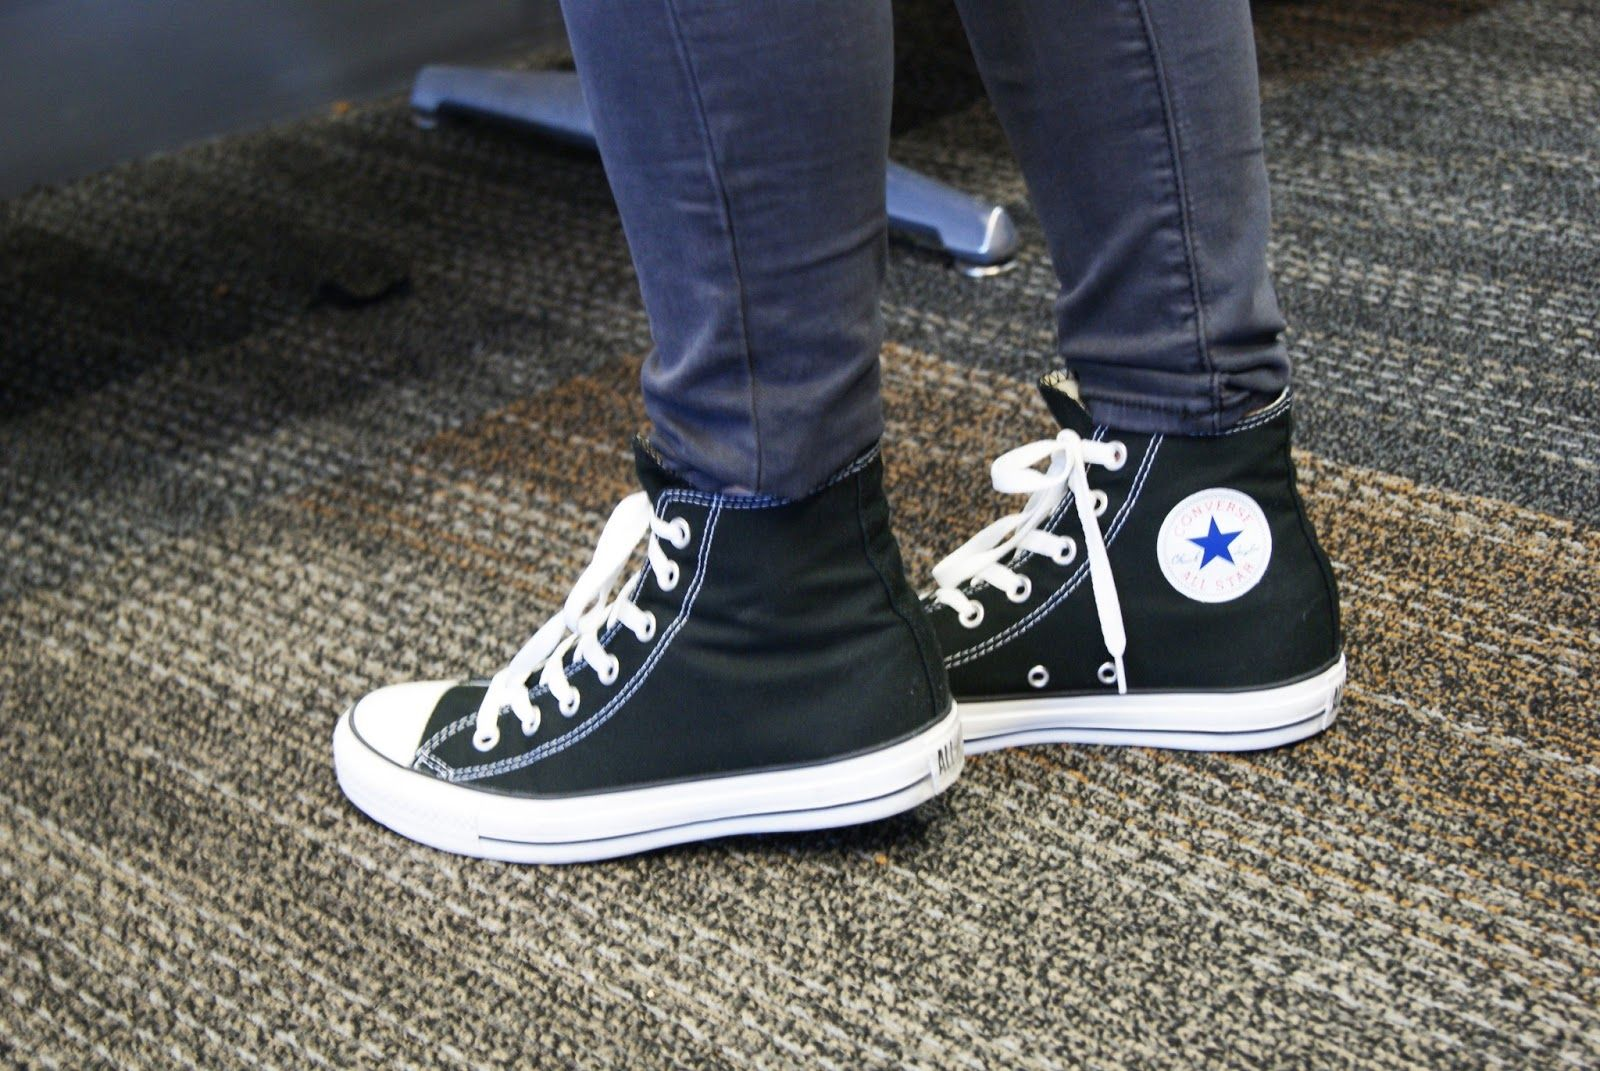 Fashion week Converse Black outfits tumblr pictures for girls